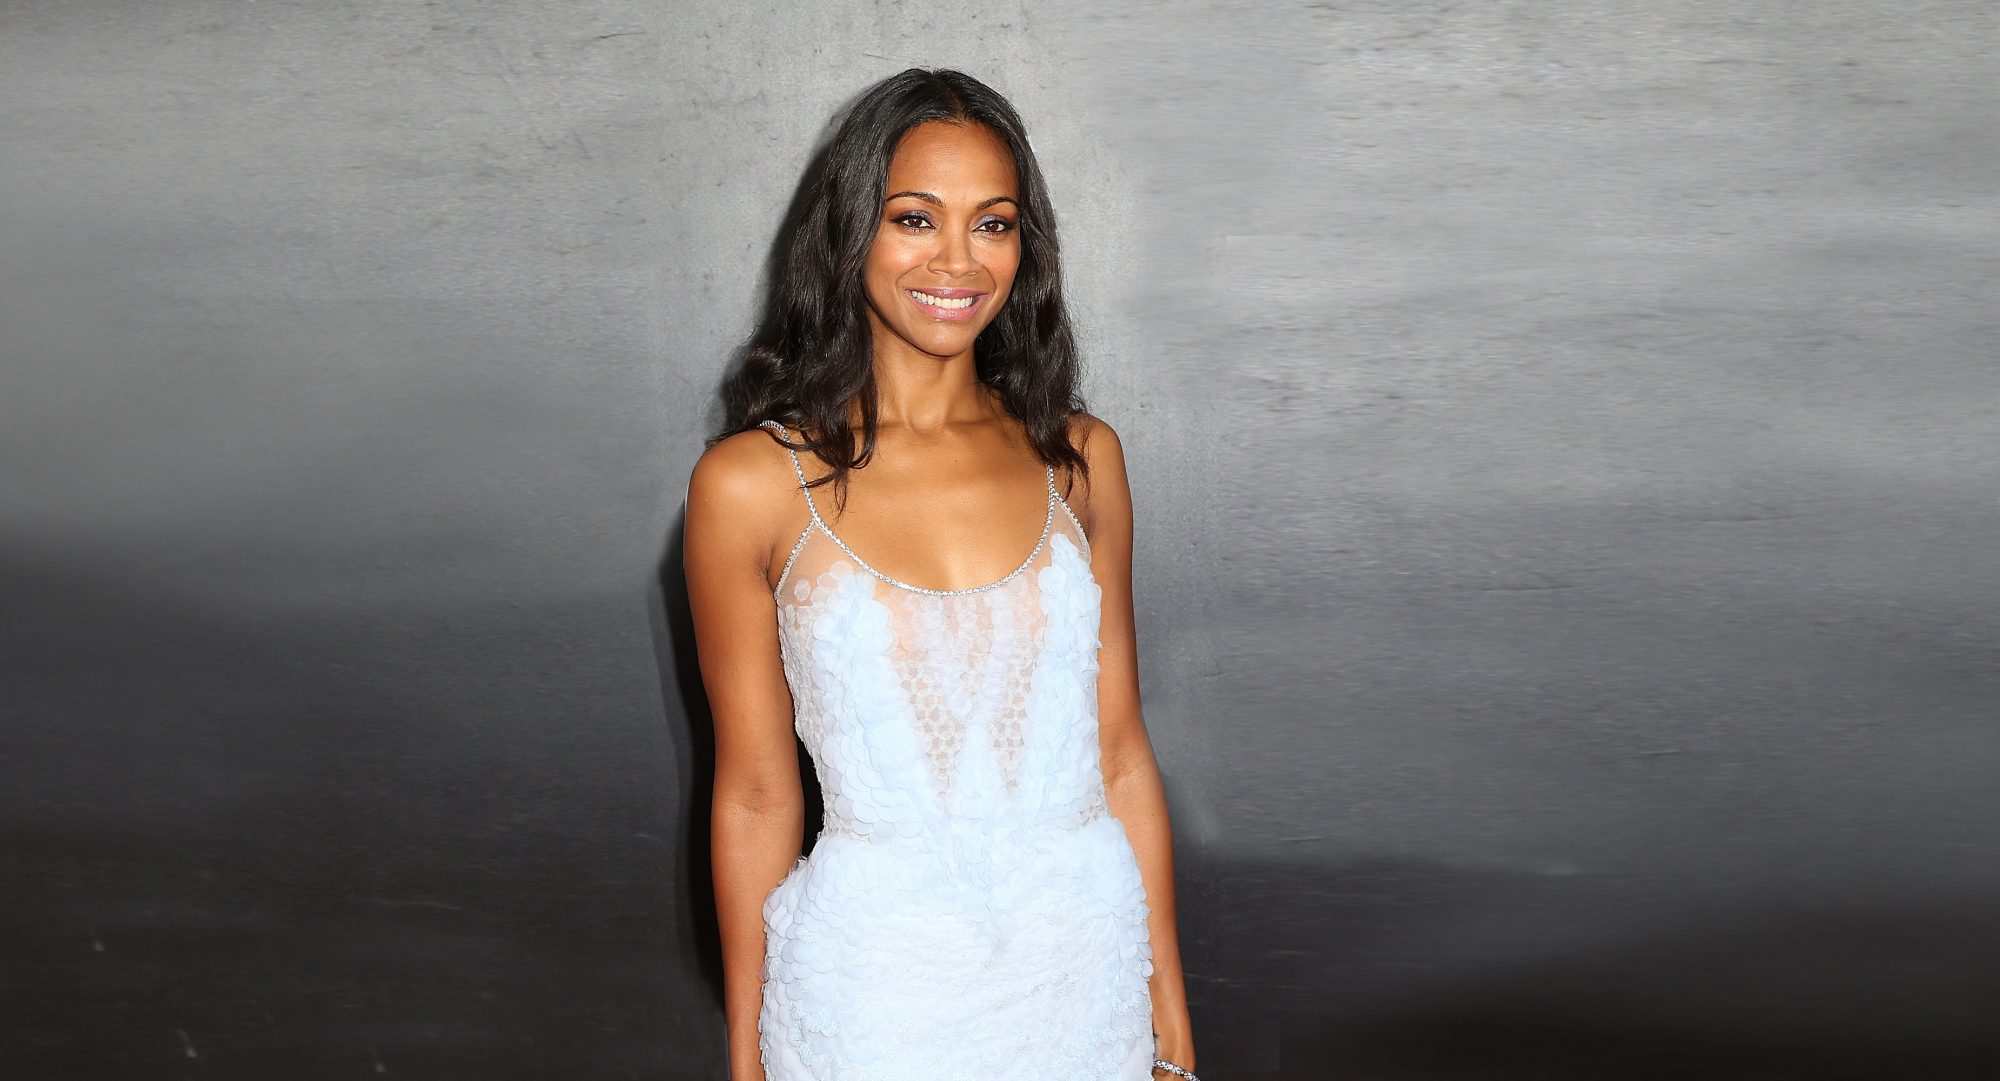 Zoe Saldana Speaks Out About Her Thyroid Disease